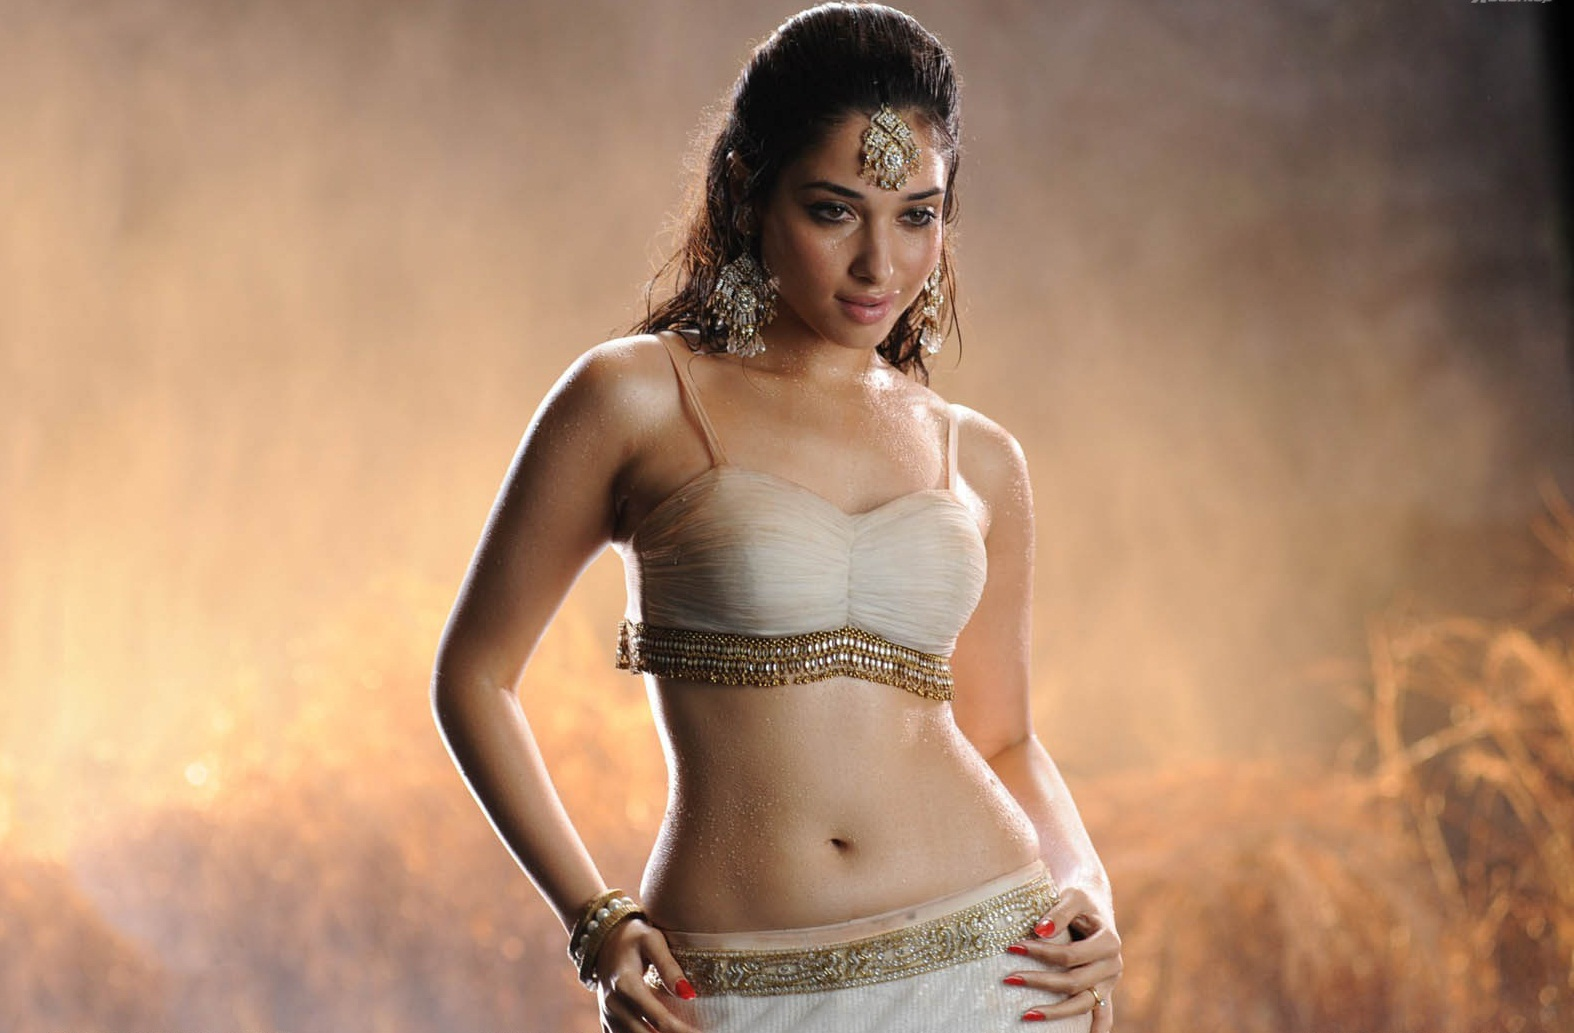 Samantha saved one mass hero, but Tamanna failed